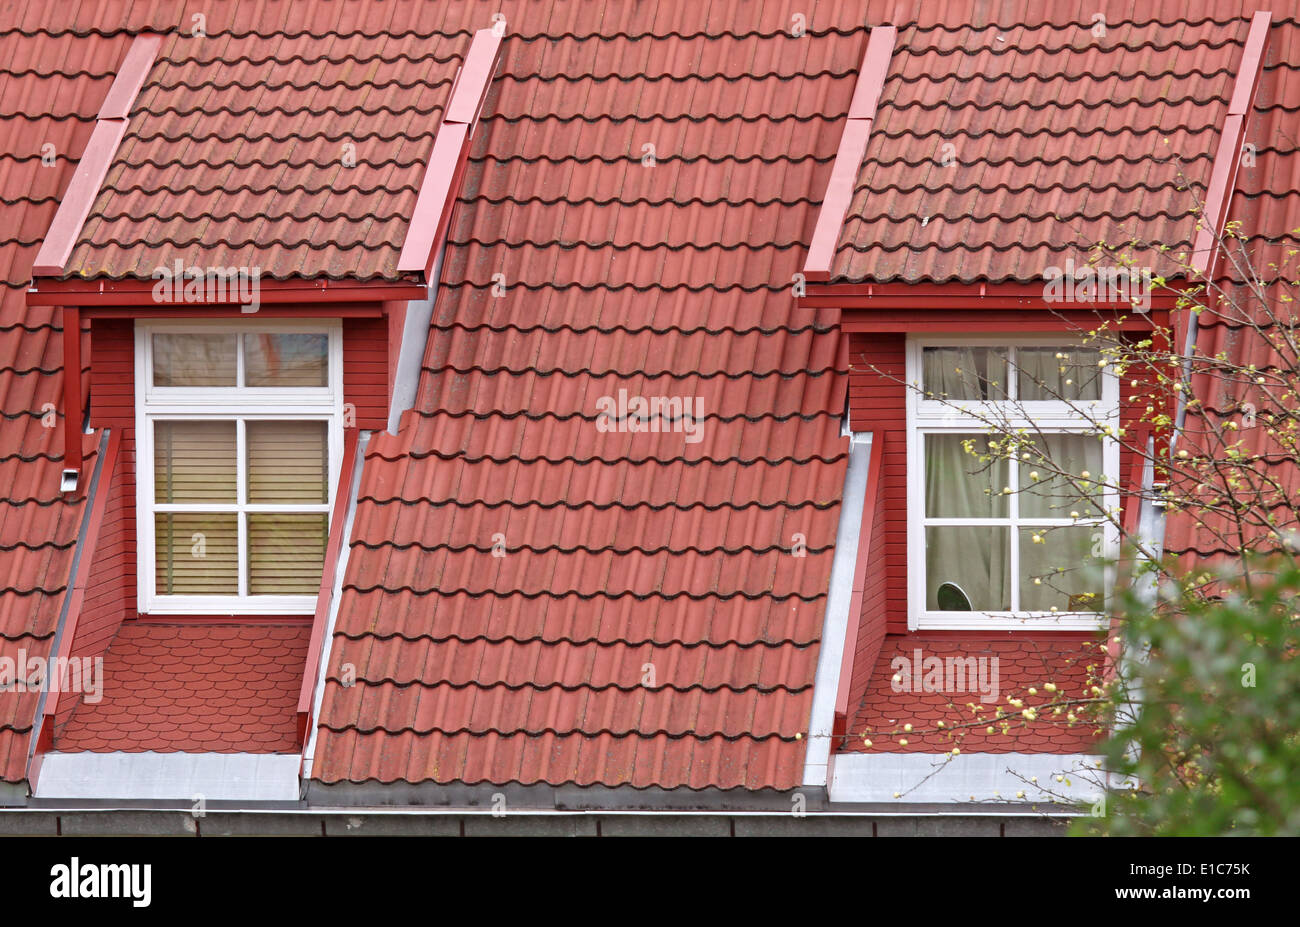 Two Classic Design Roof Windows With Red Tiles Stock Photo Alamy